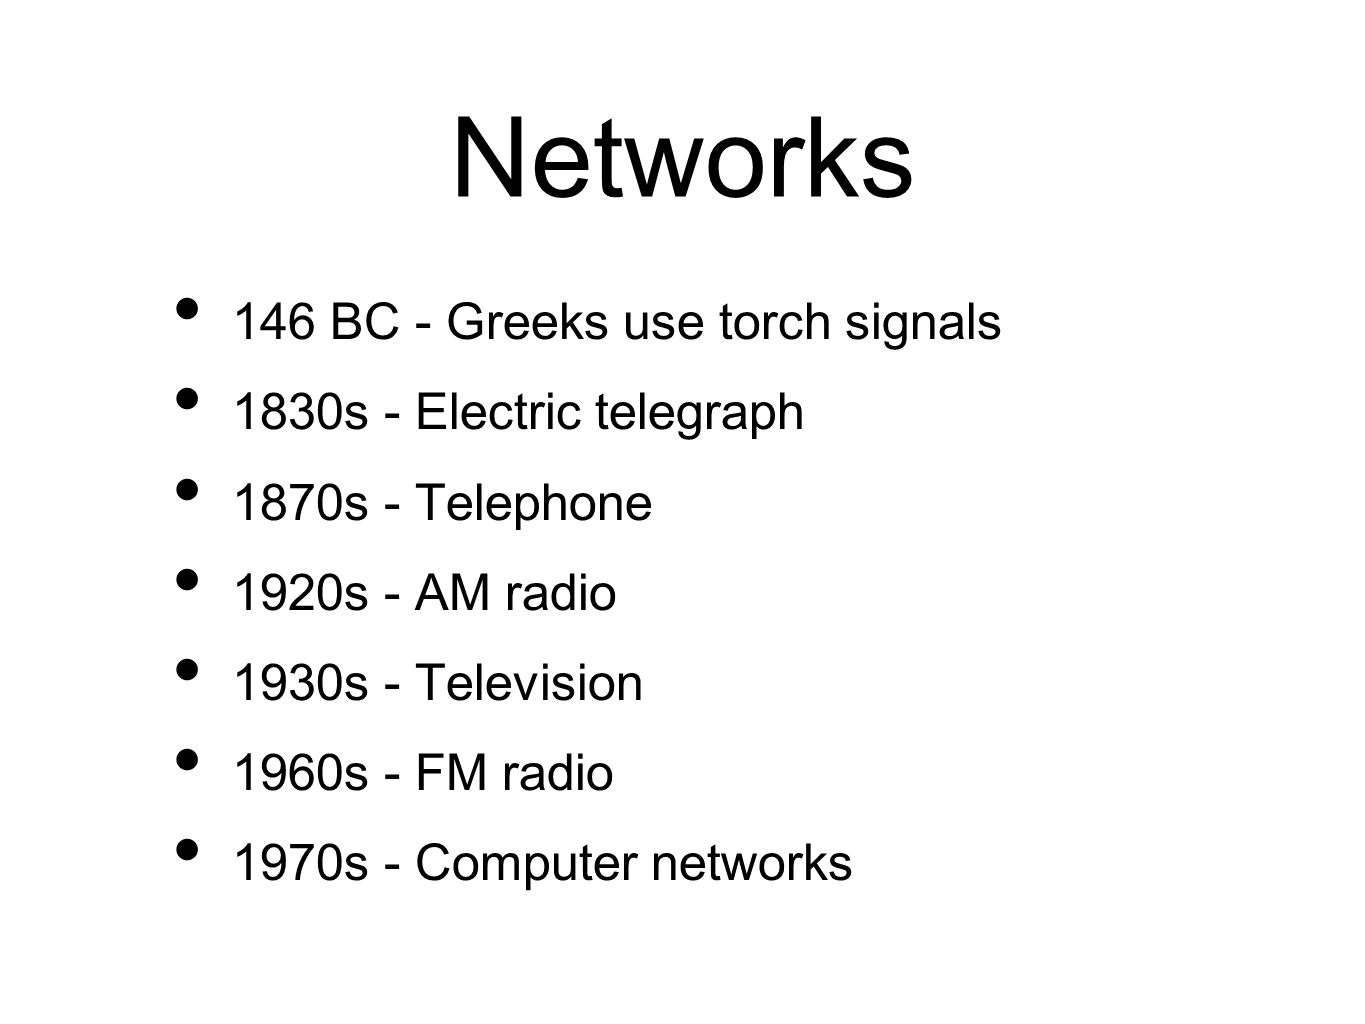 Networks 146 BC - Greeks use torch signals 1830s - Electric telegraph 1870s - Telephone 1920s - AM radio 1930s - Television 1960s - FM radio 1970s - Computer networks